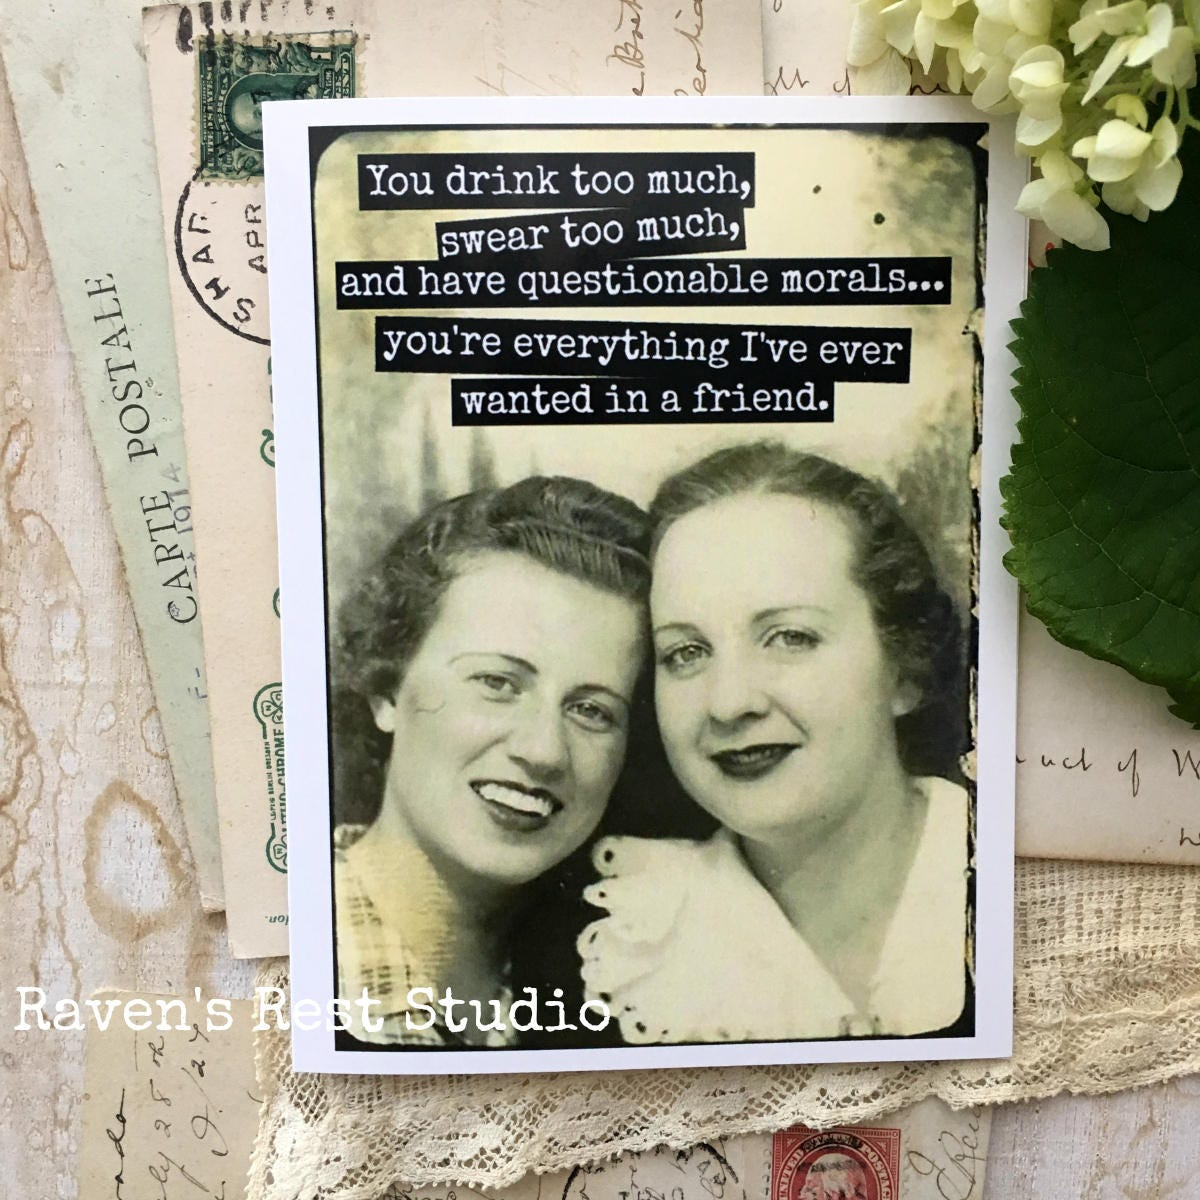 Funny Greeting Card. Vintage Photo Booth. Best Friend Card. You Drink Too  Much   Blank Inside Greeting Best Friends. Card #1b.